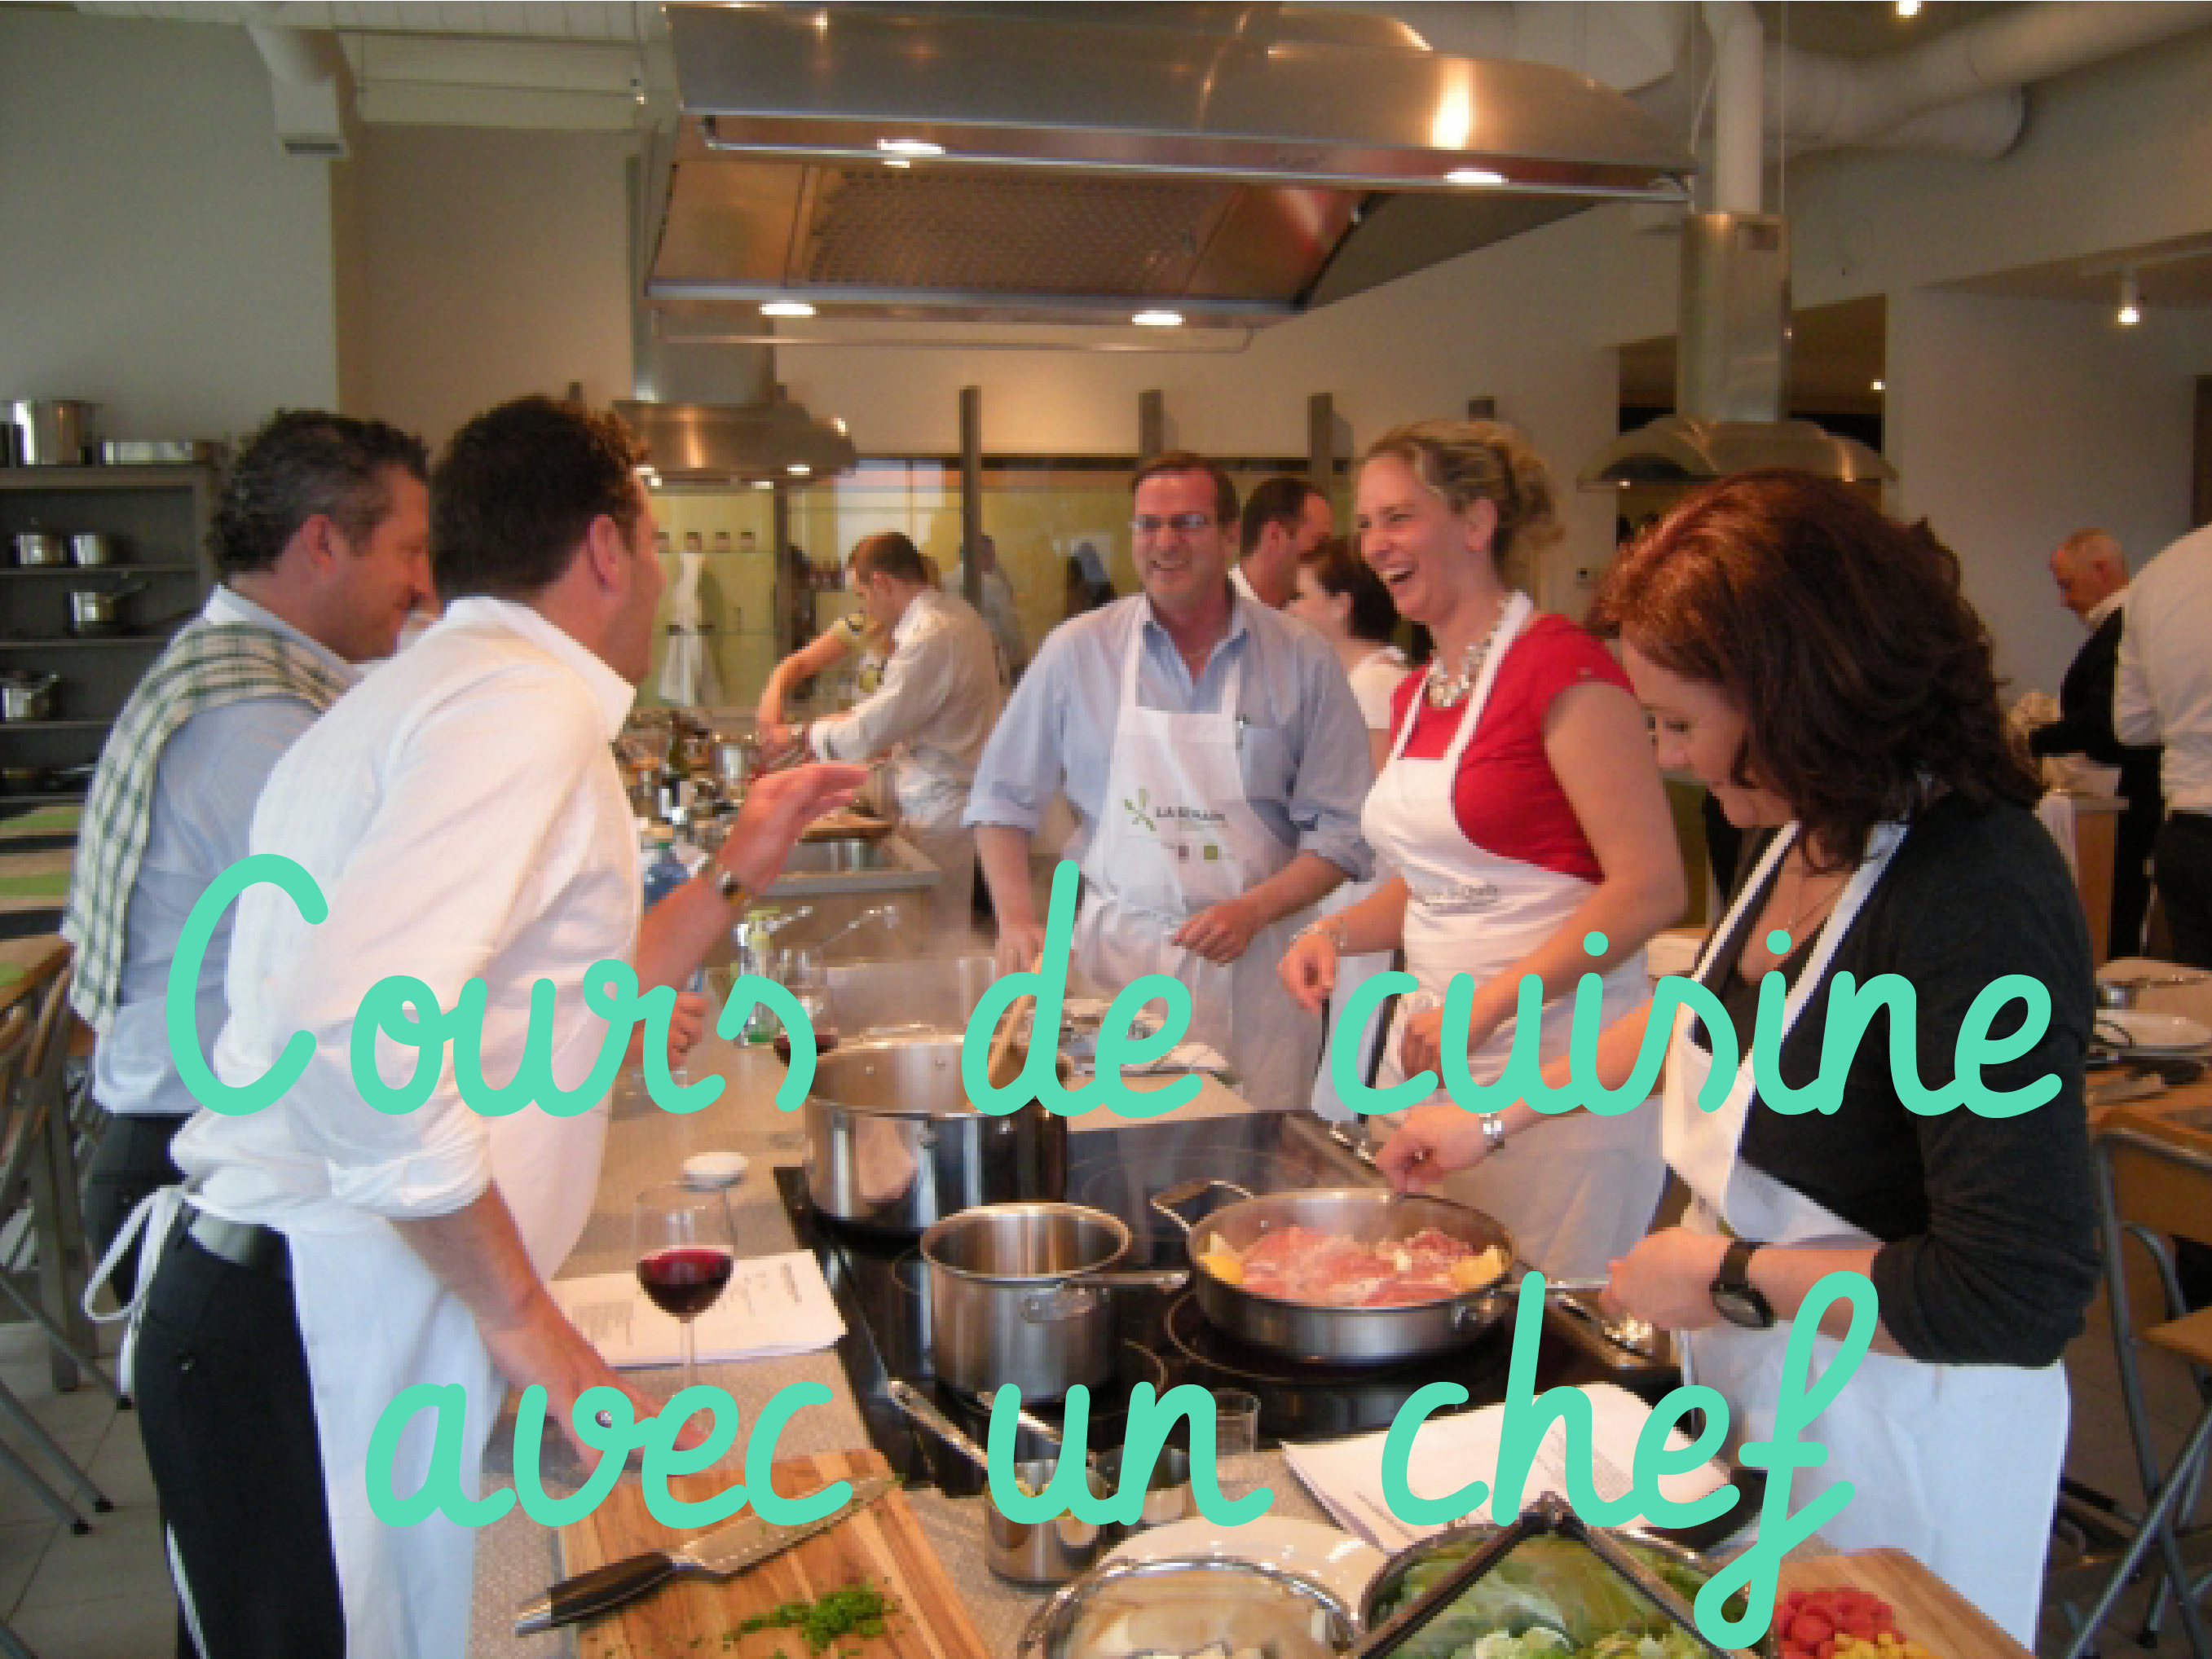 courcuisine-01-1510594859.png